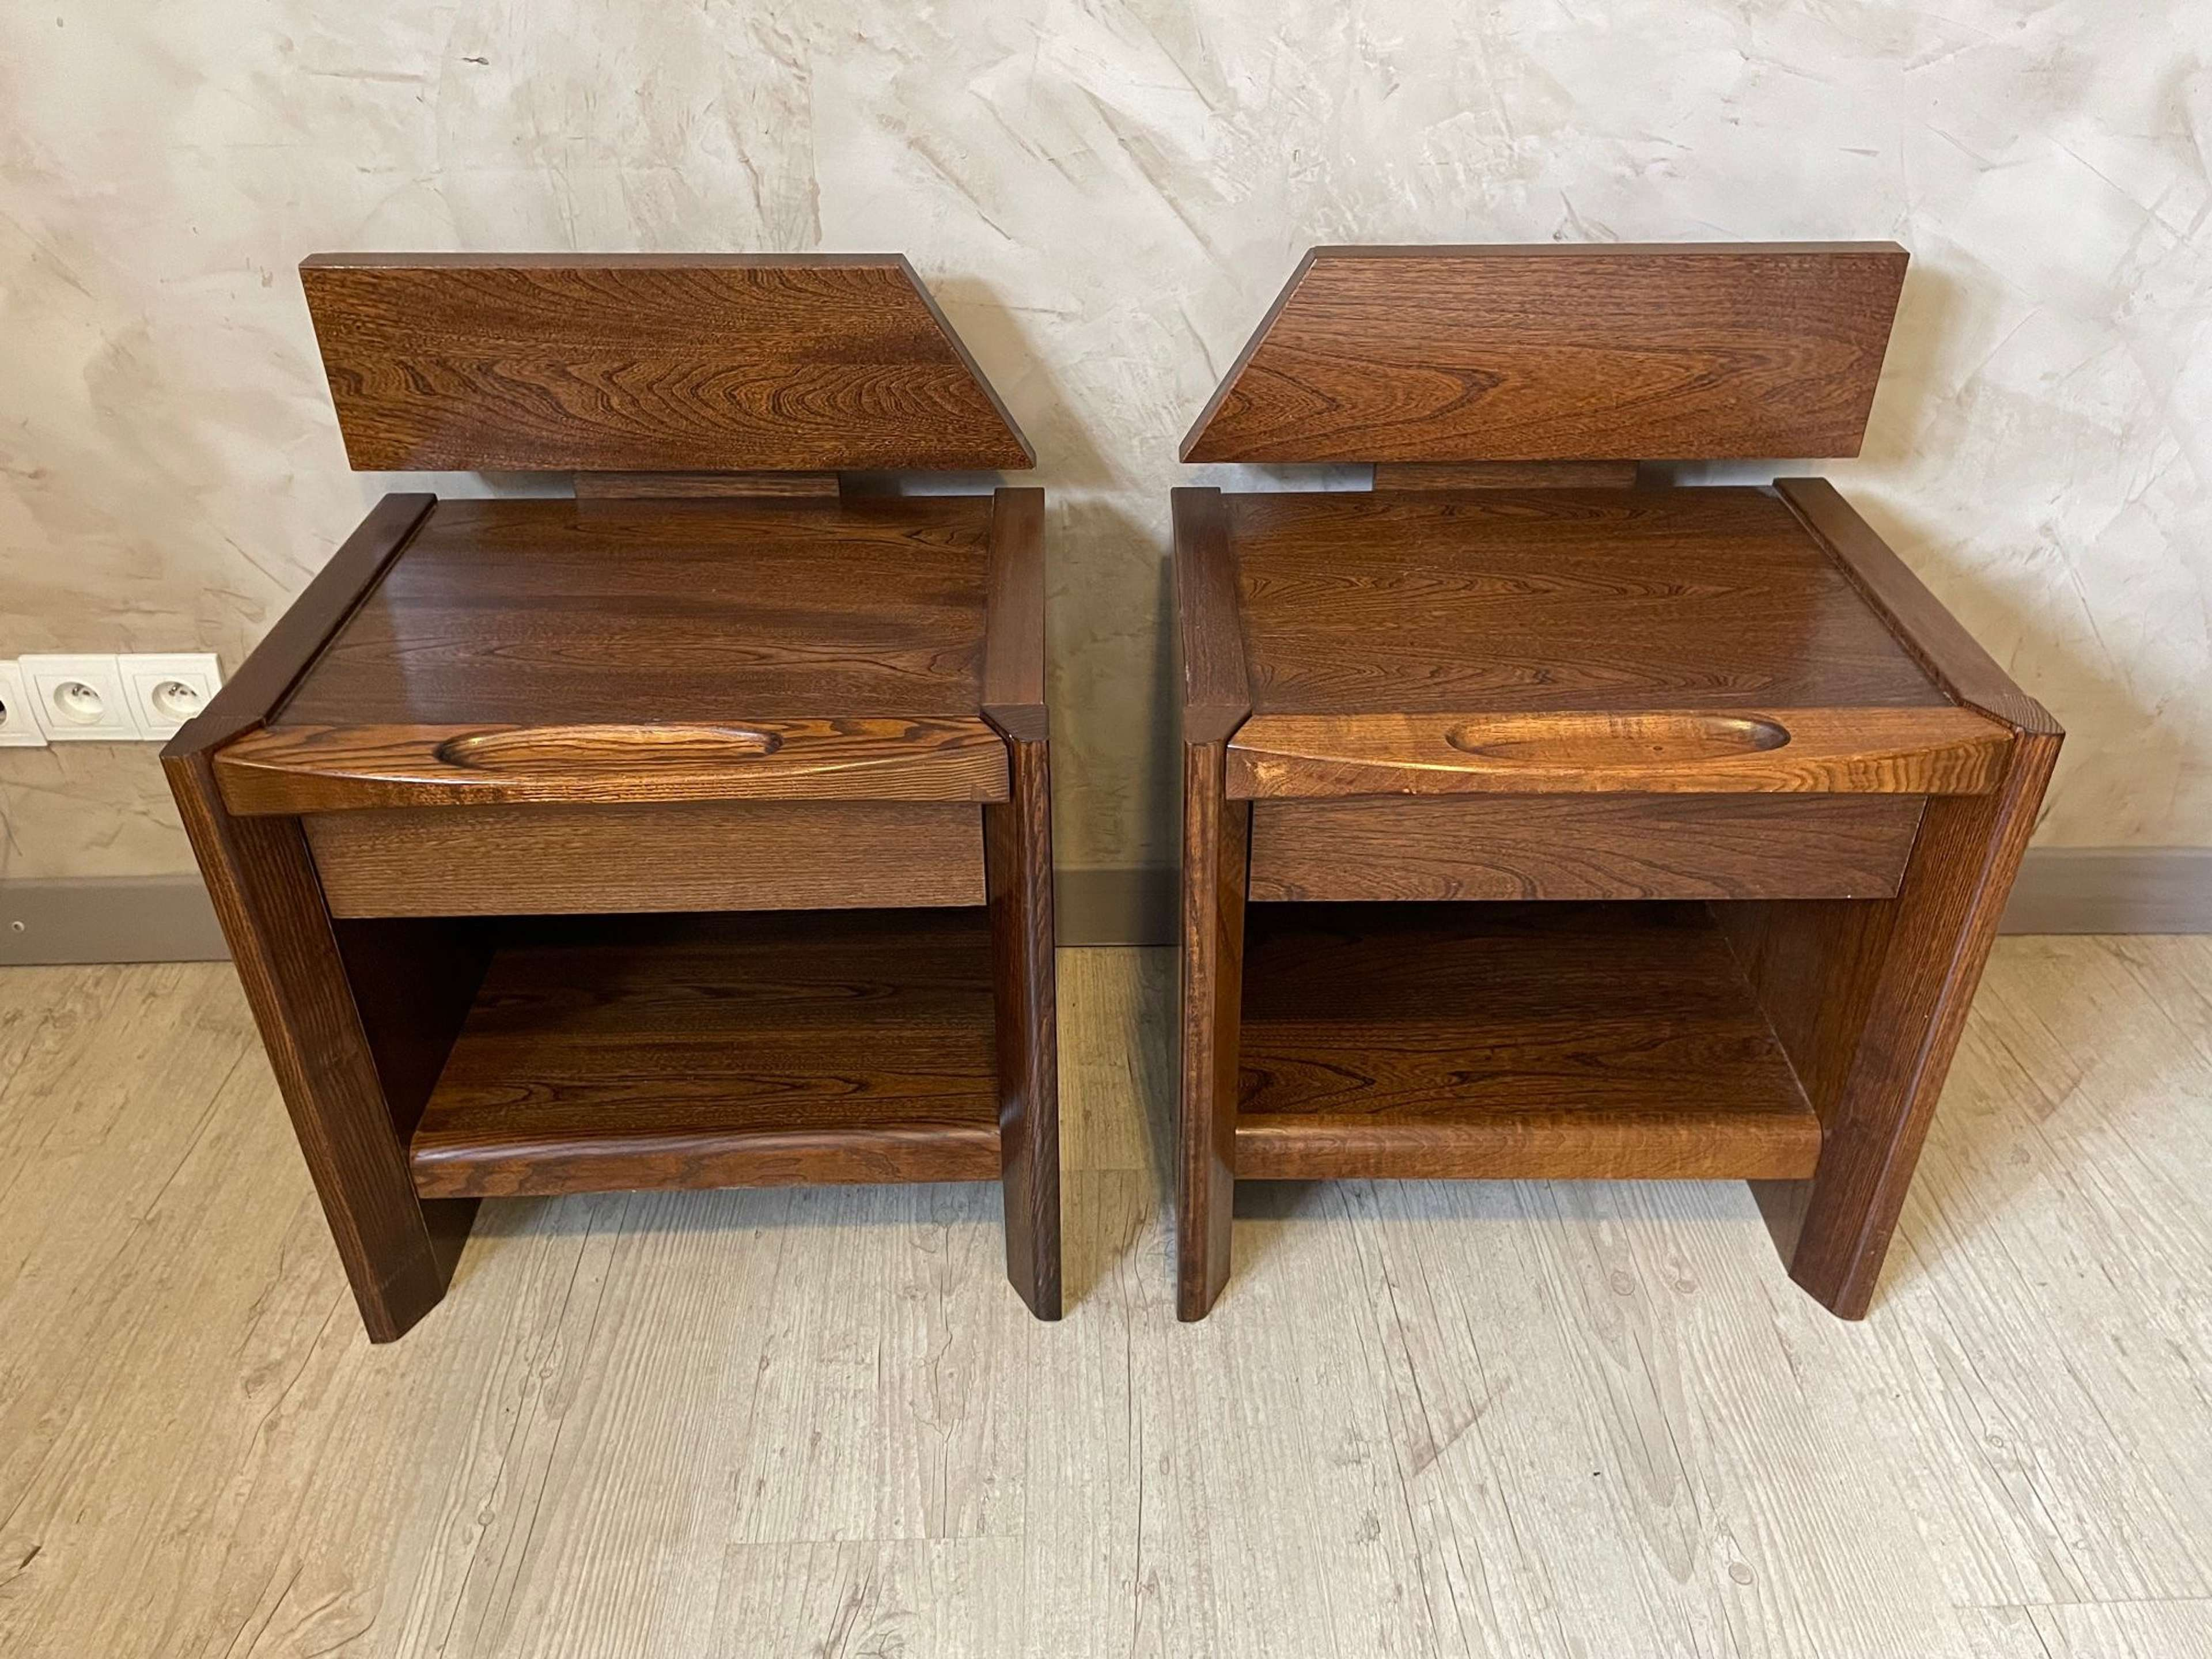 20th century Rosewood Baumann Pair of side tables